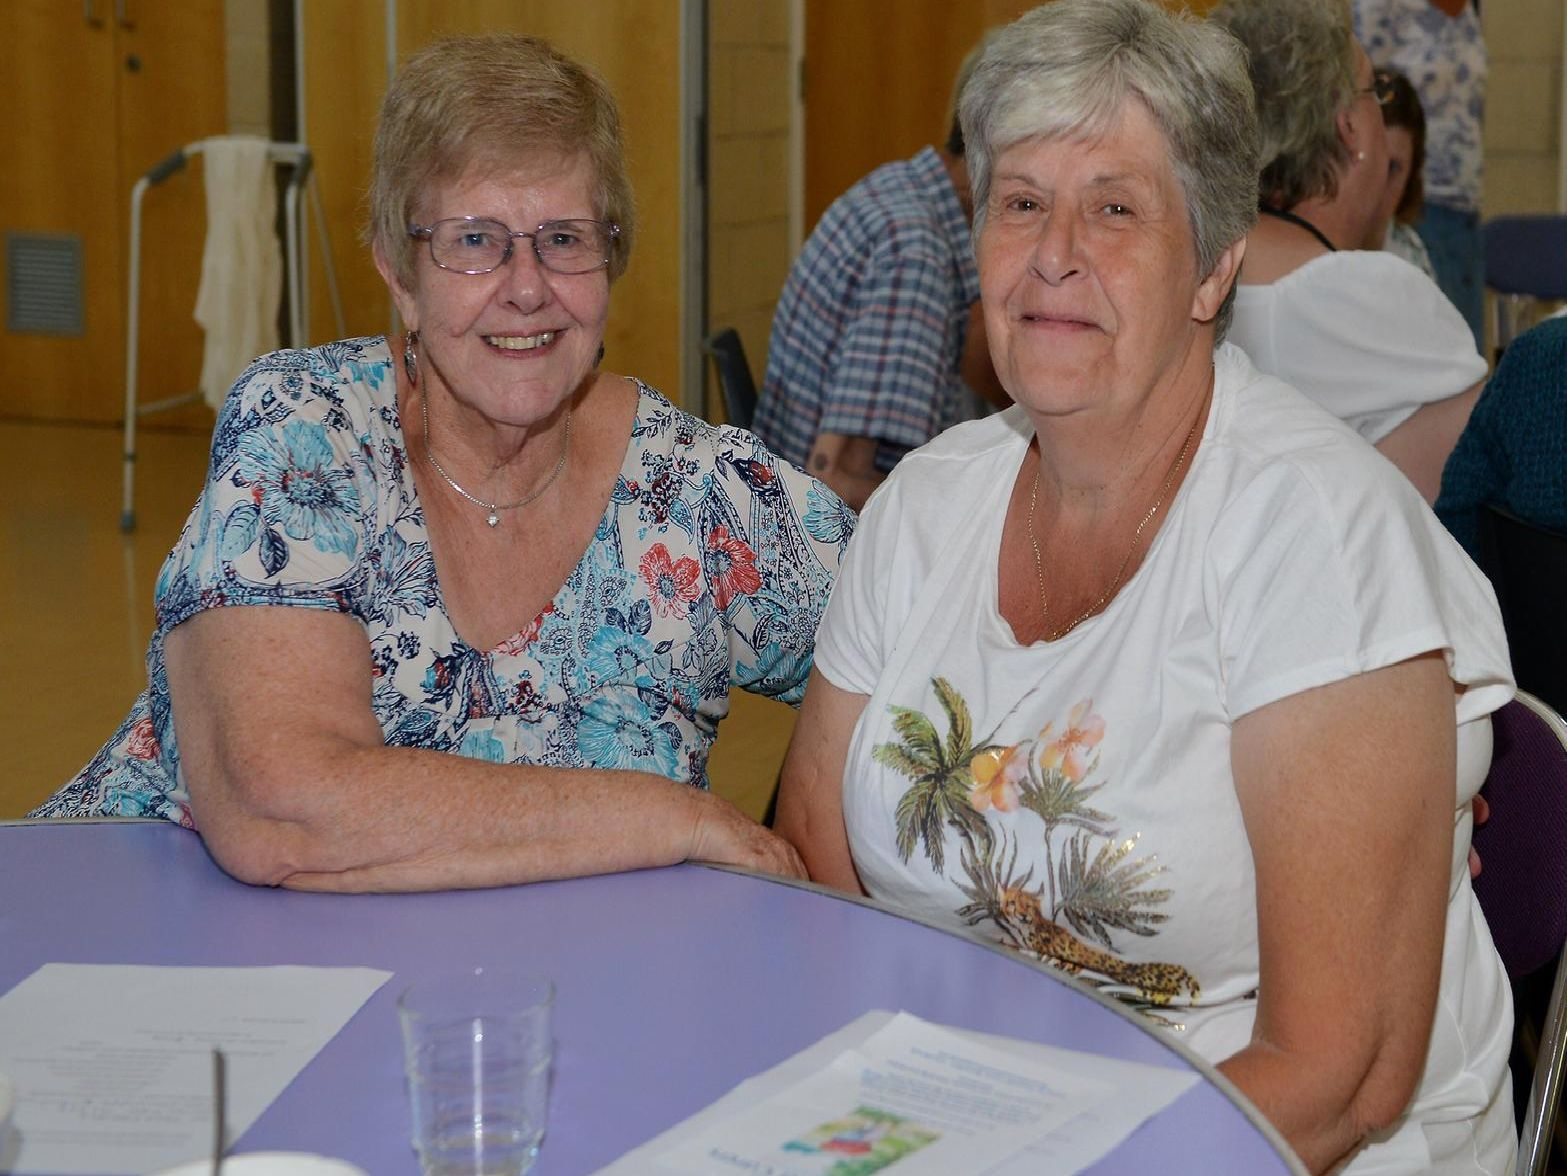 The Crossing Church held an afternoon of singing and music for patients and carers of dementia